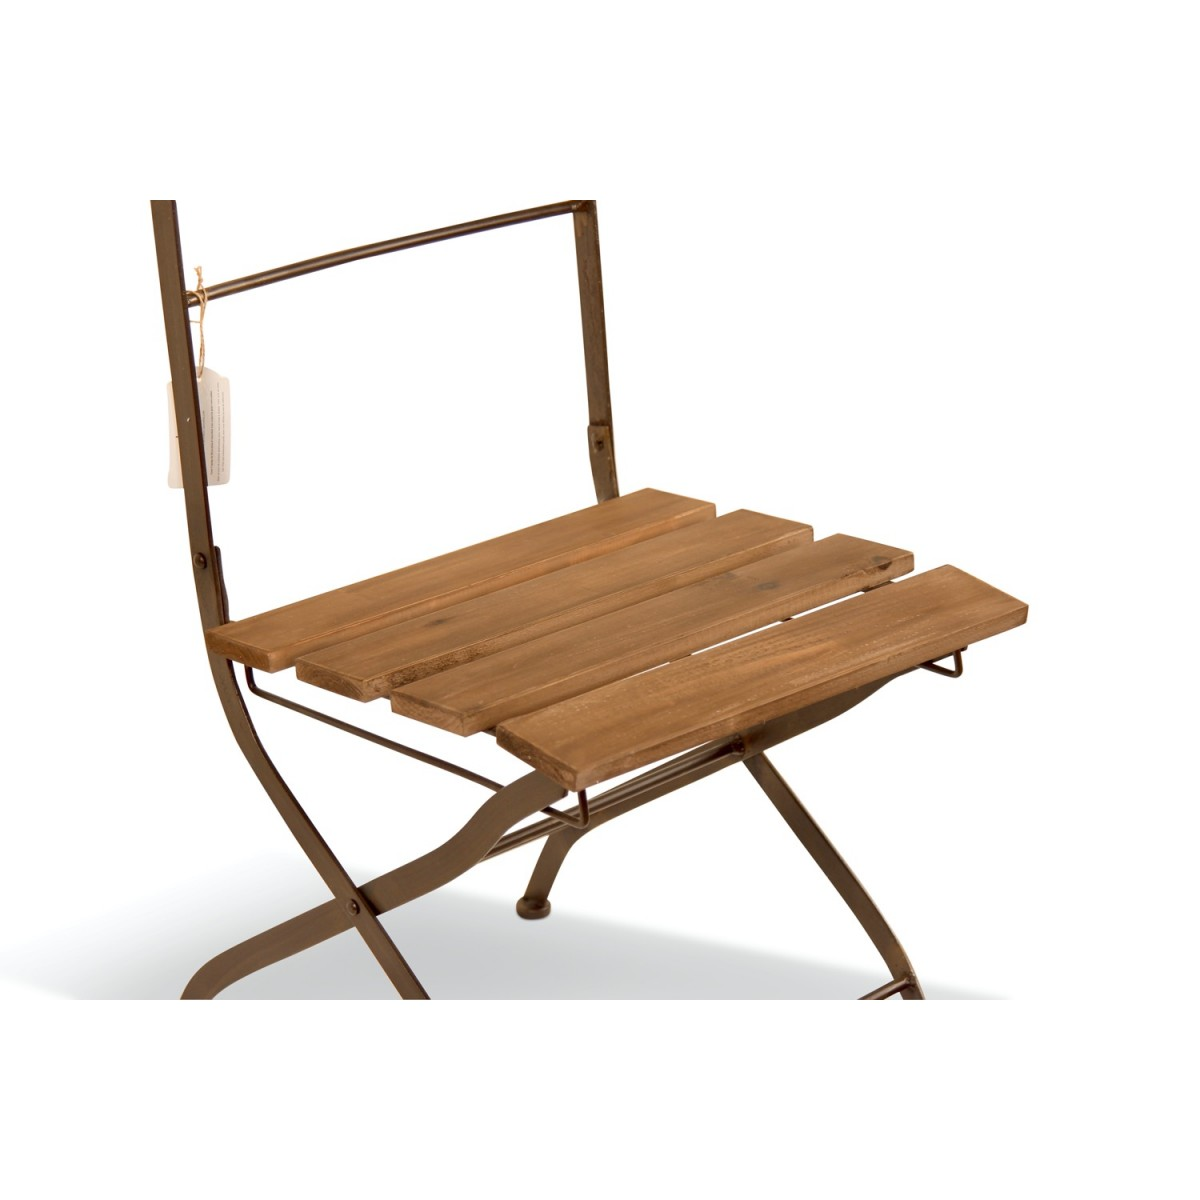 Chaise Bois Fer Forgé Marron 40x50.5x93.5cm